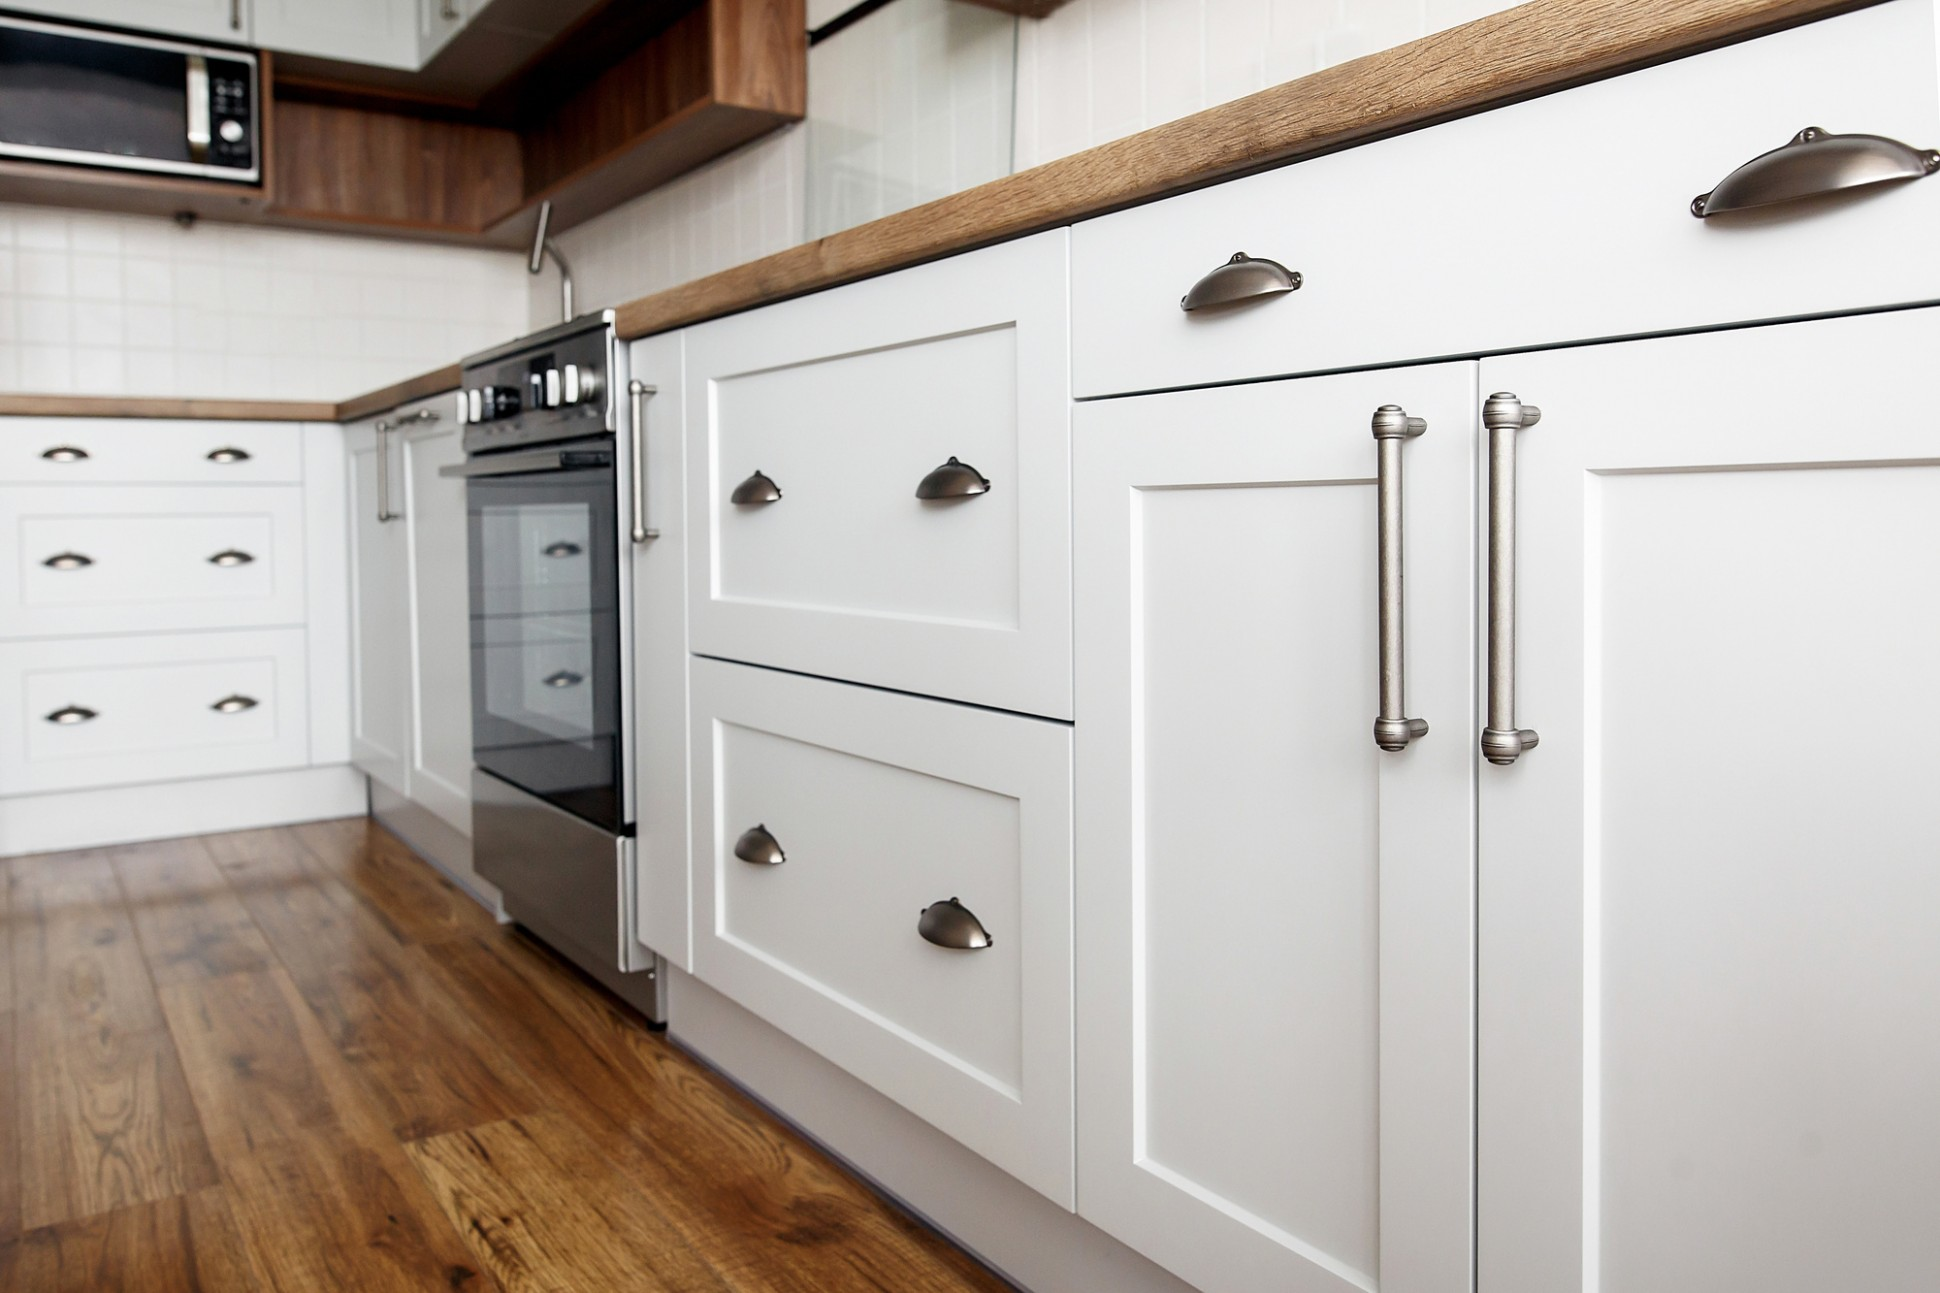 10 Elegant Types of Handles for Your Kitchen Cabinets • KitchenWhiz - Kitchen Cabinet Handle Design